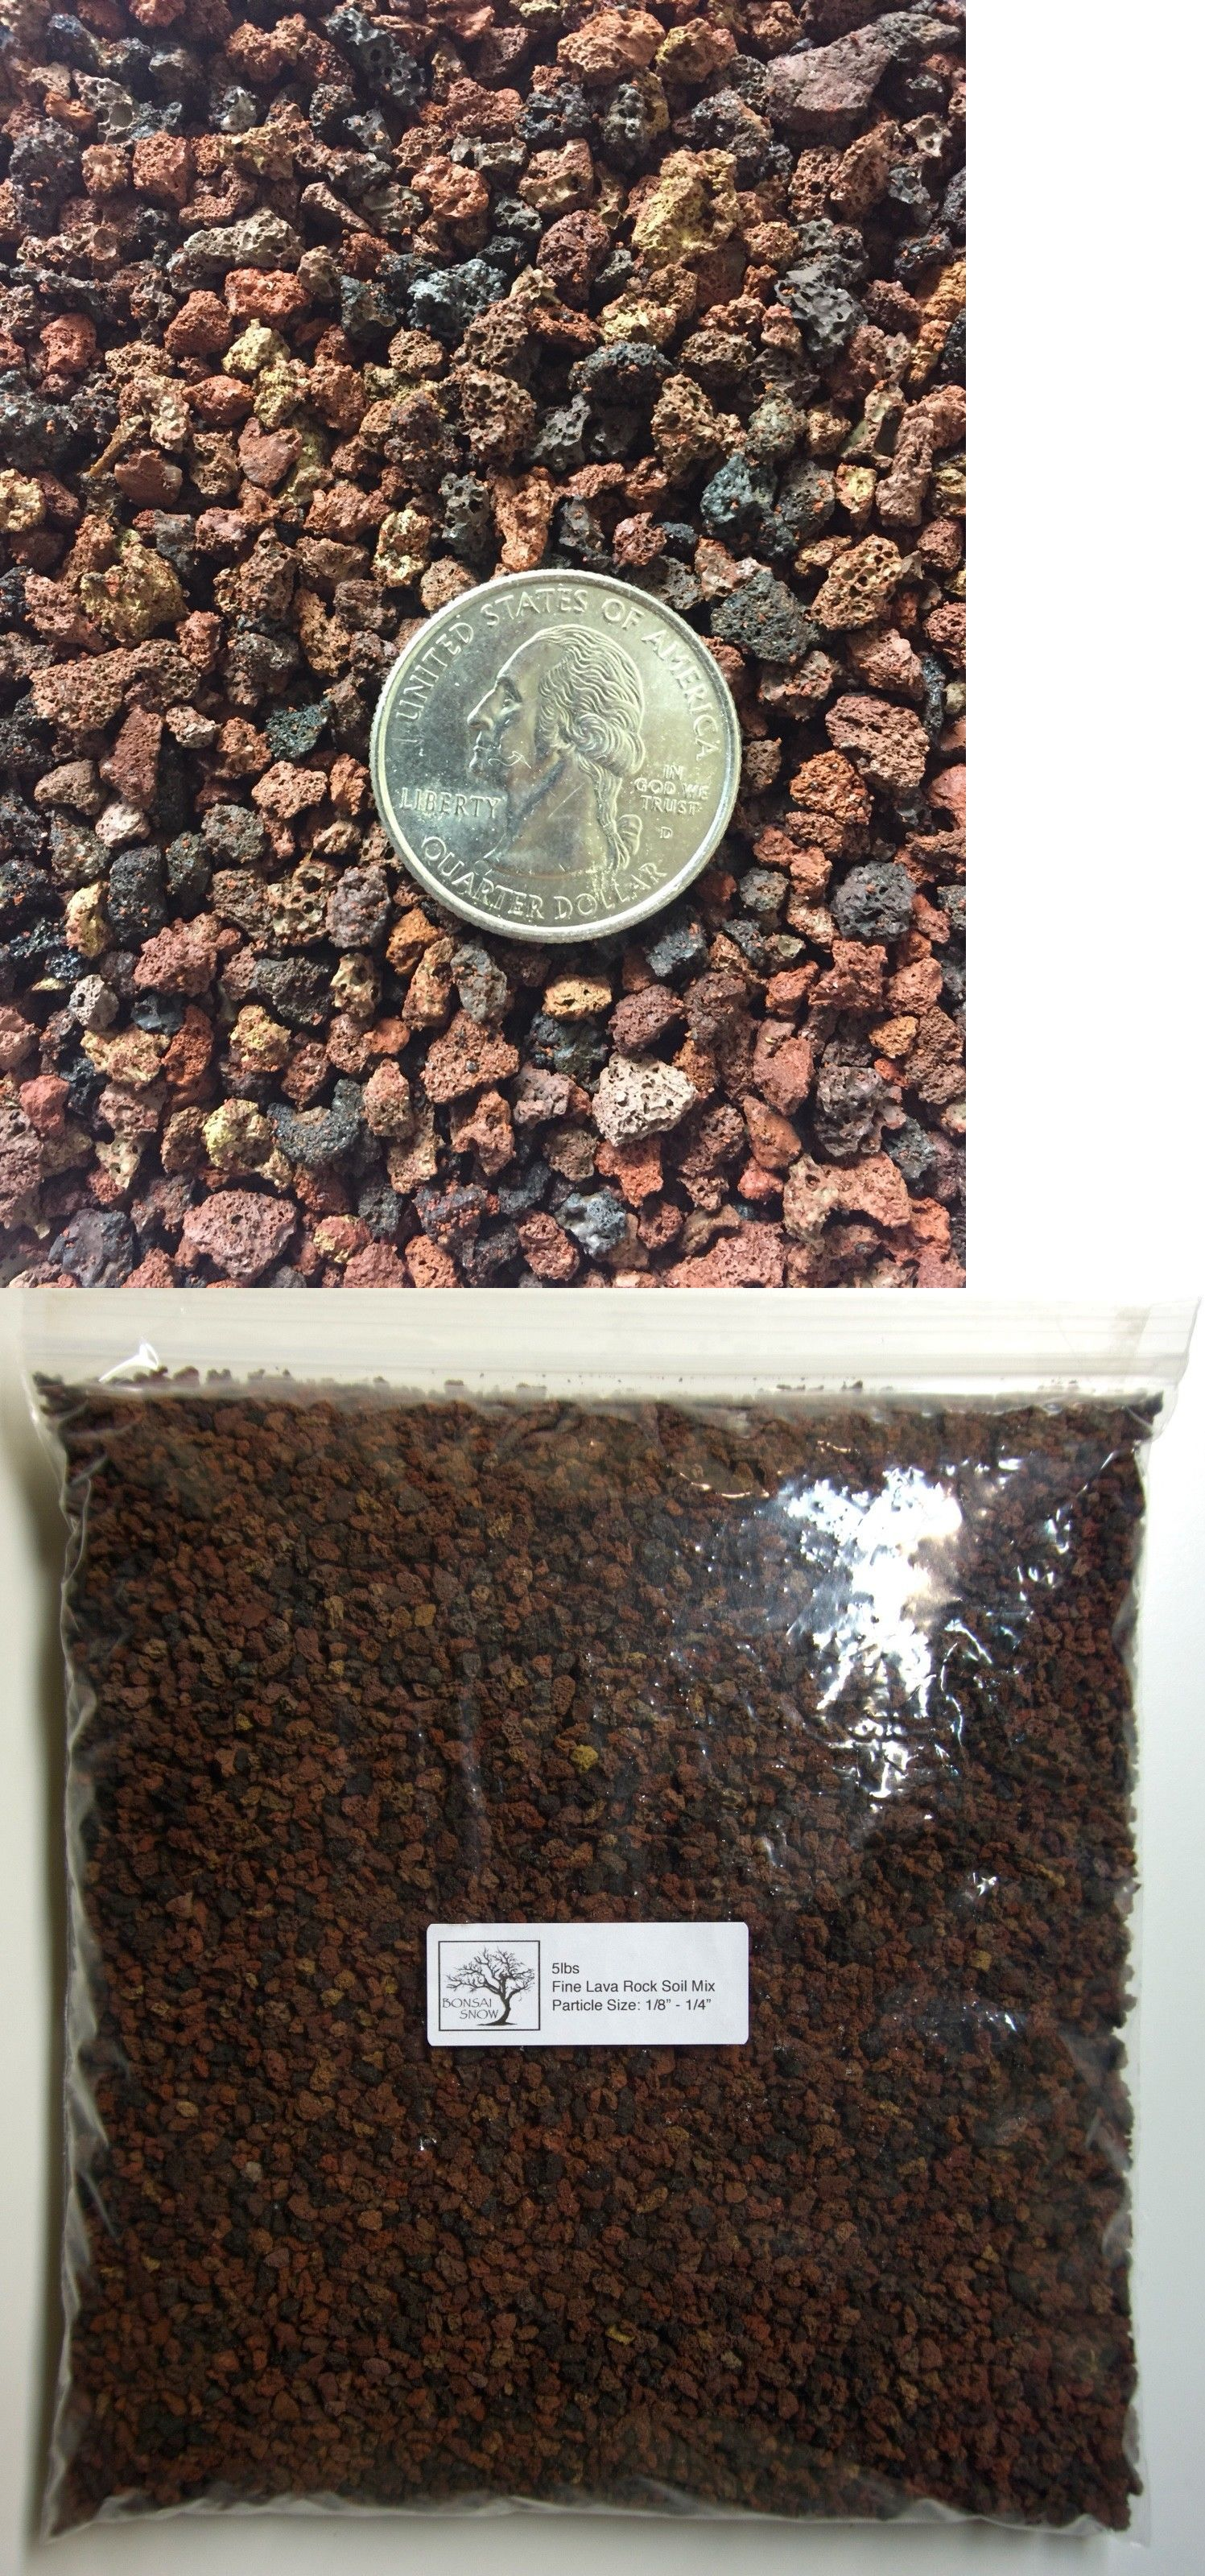 5 Lbs 1 8 1 4 Horticultural Lava Rock For Cactus And Bonsai Tree Soil Bonsai Tree Bonsai Soil Bonsai